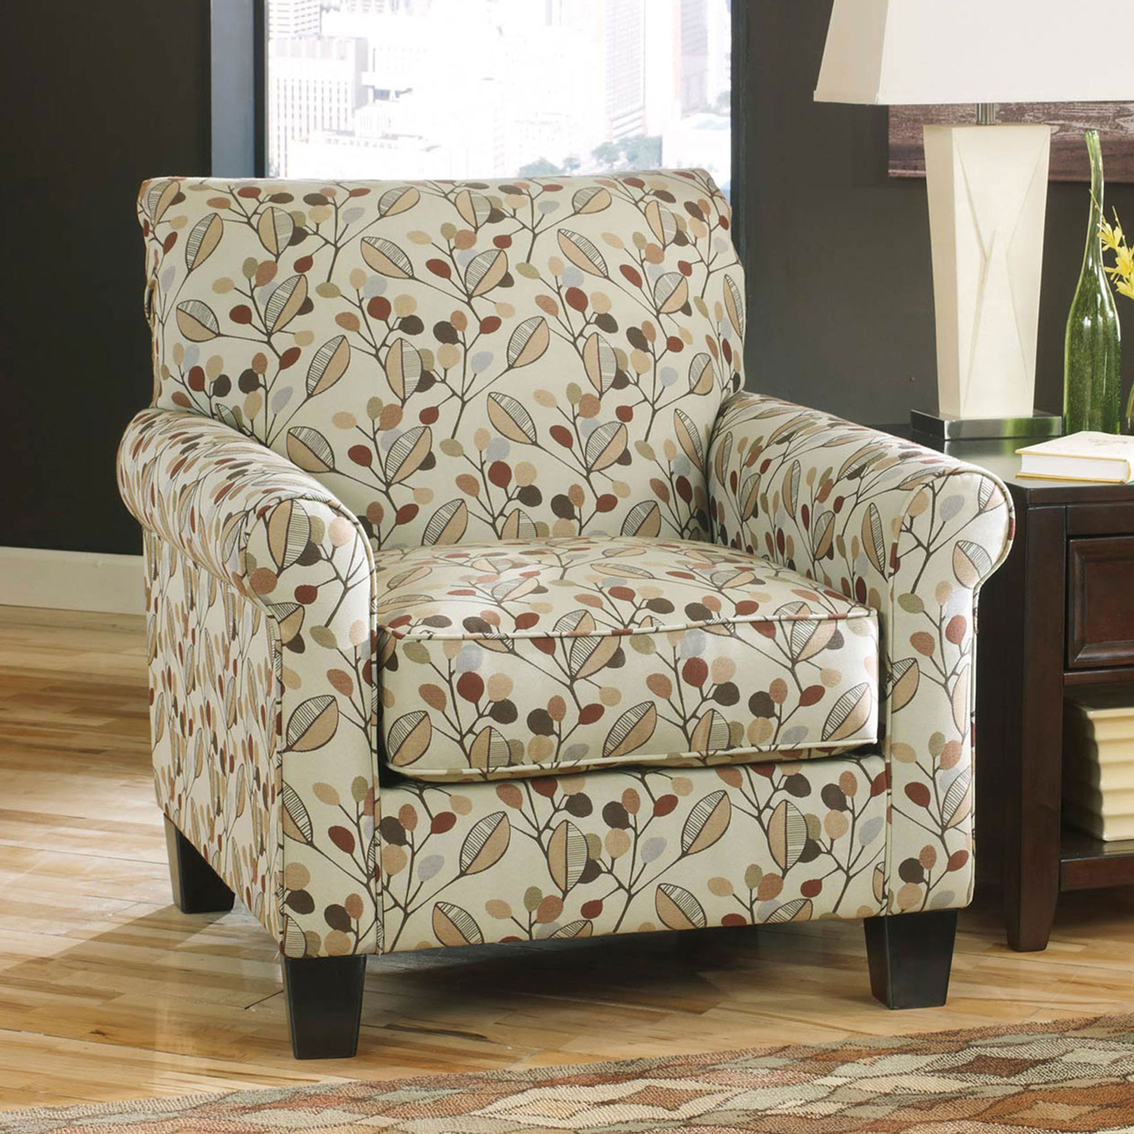 Signature Design By Ashley Danely Dusk Accent Chair